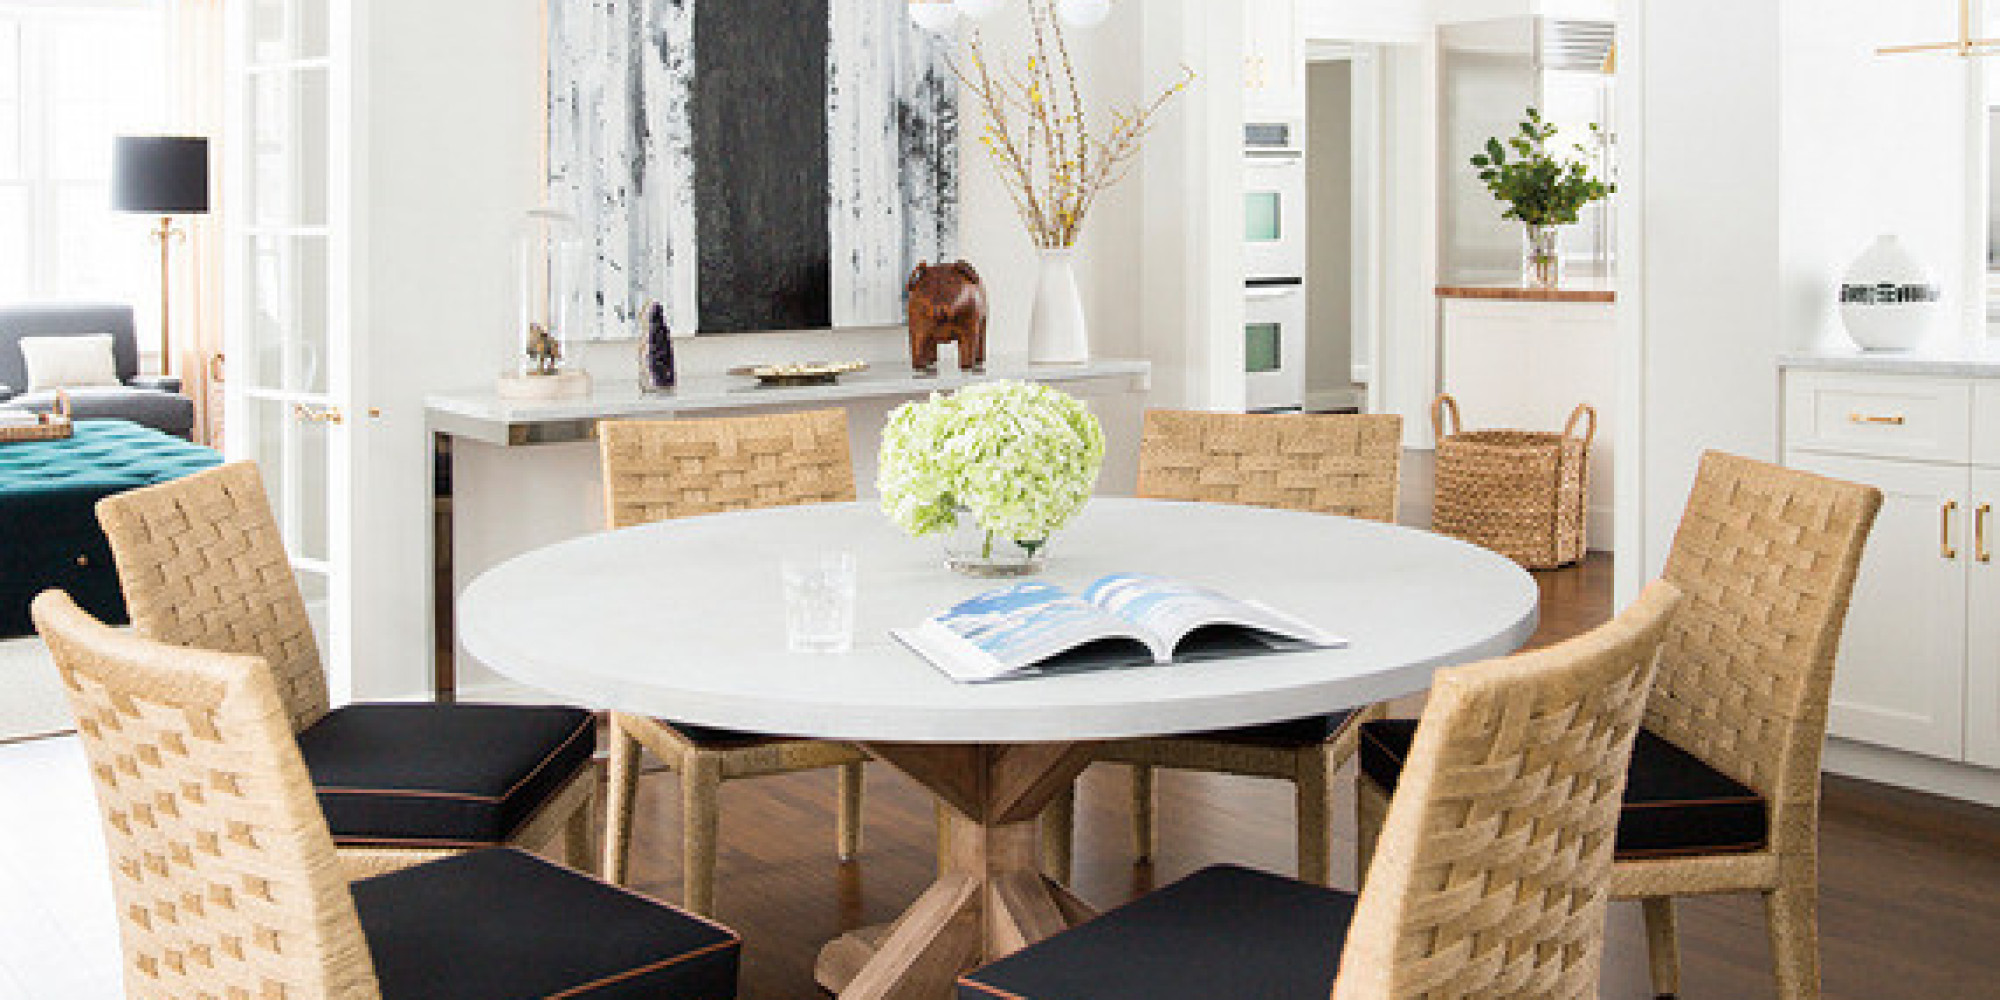 Nate Berkus And Team Take On A Bedroom Home HuffPost - Nate berkus bedroom designs